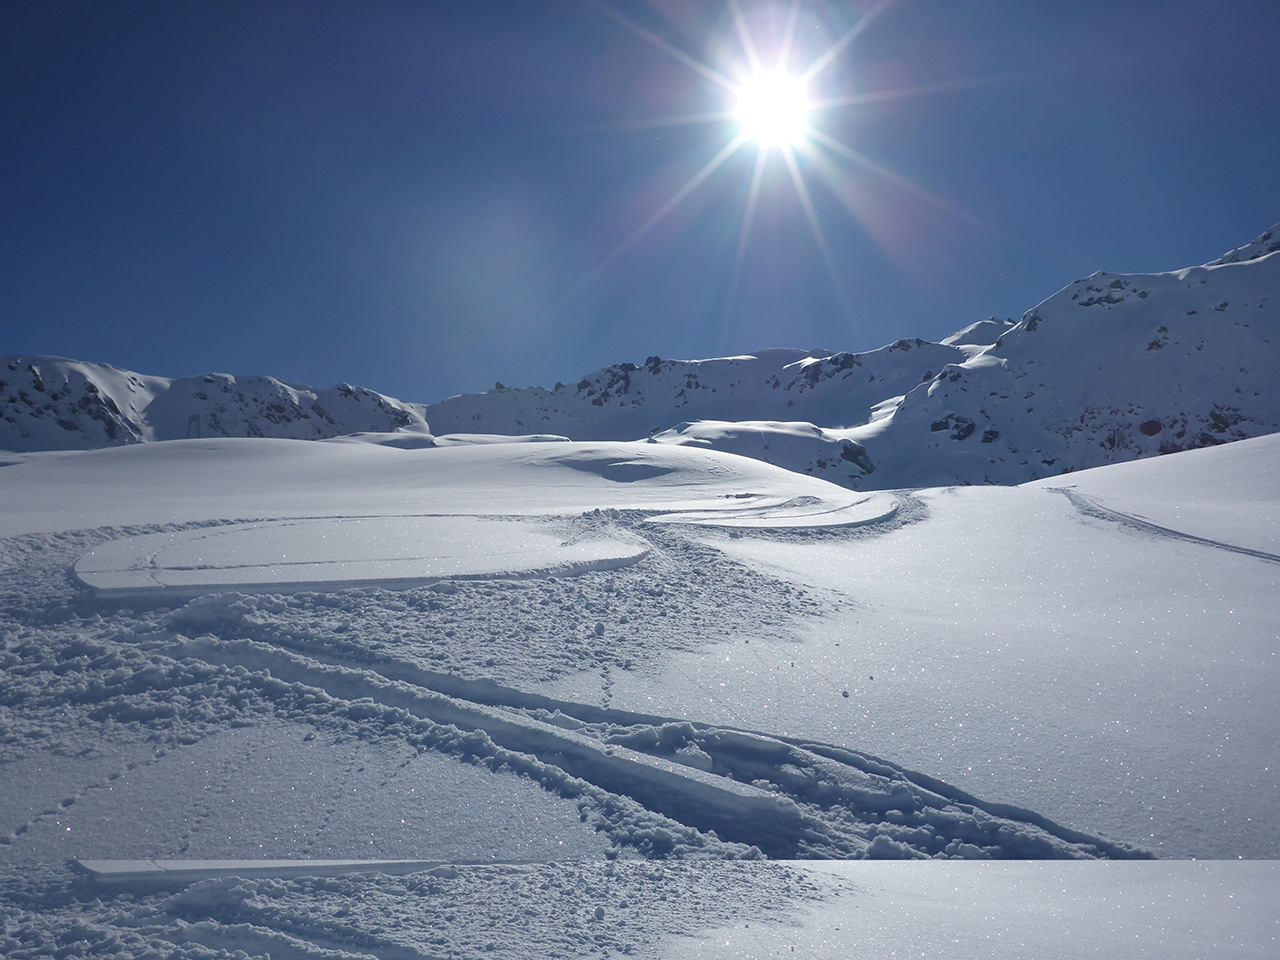 Powder | Ski School | Andermatt | Freeriding | Guiding | Ski Camp | Private Lessons | Skiarena Andermatt-Sedrun-Disentis